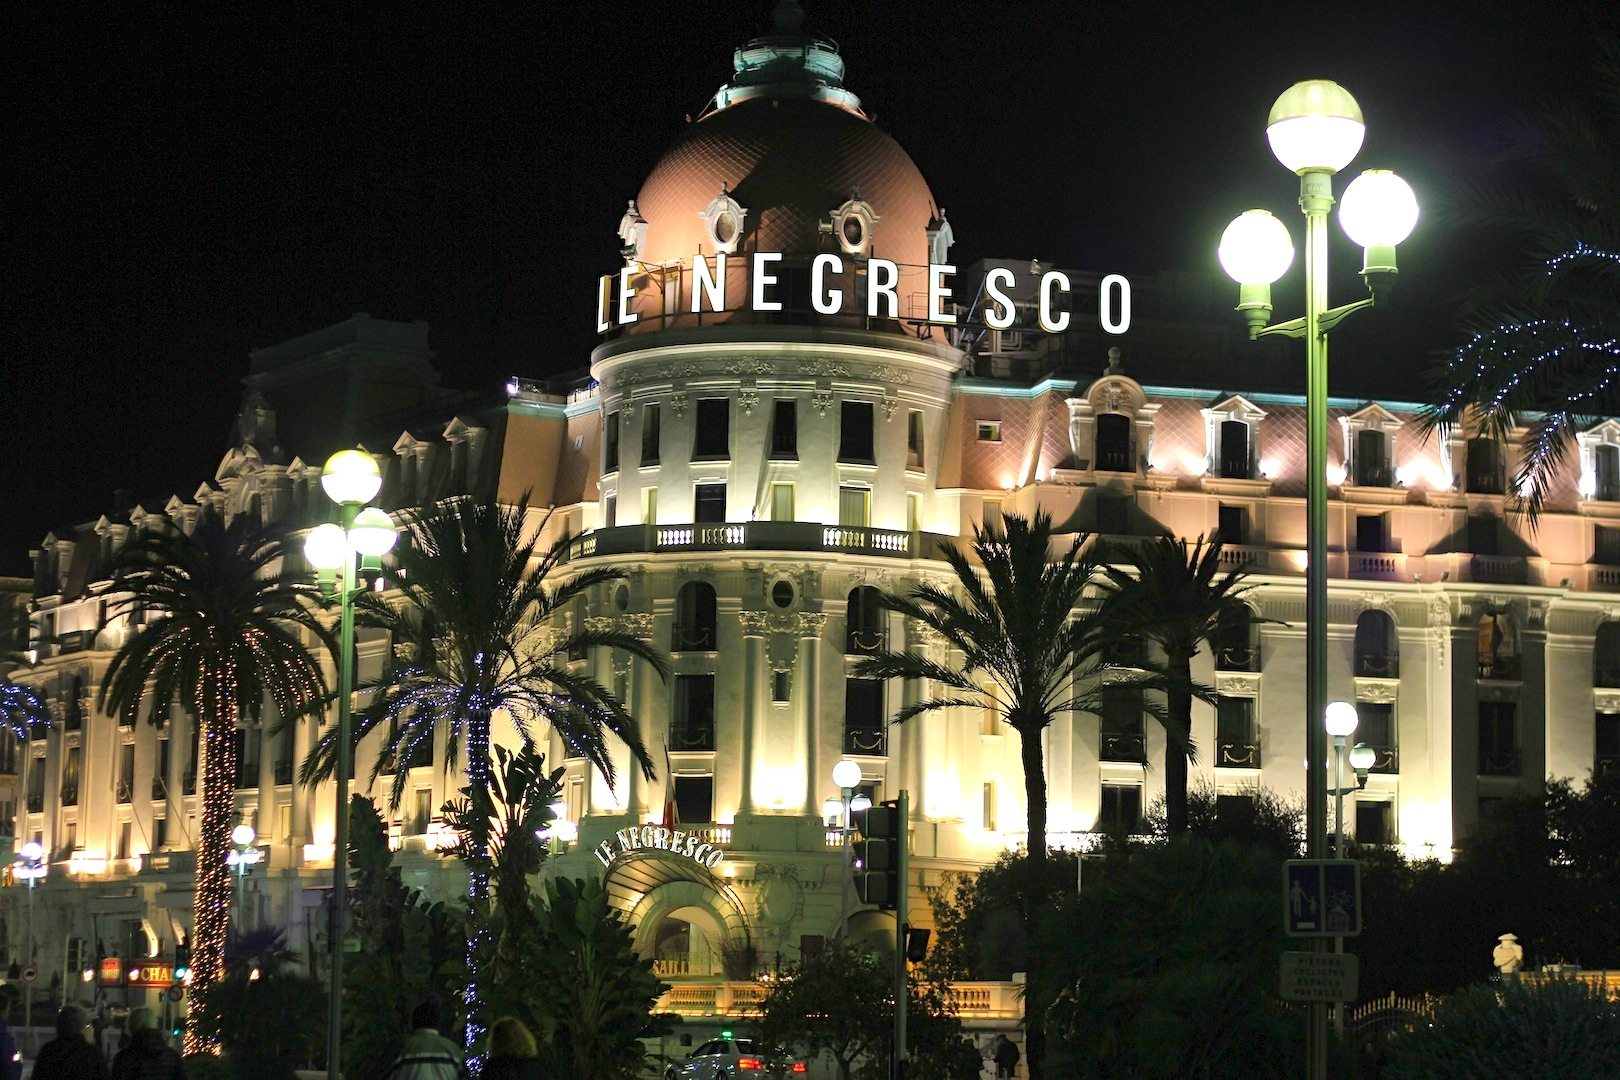 Le Negresco. Fünfsternehotellegende, Nizza